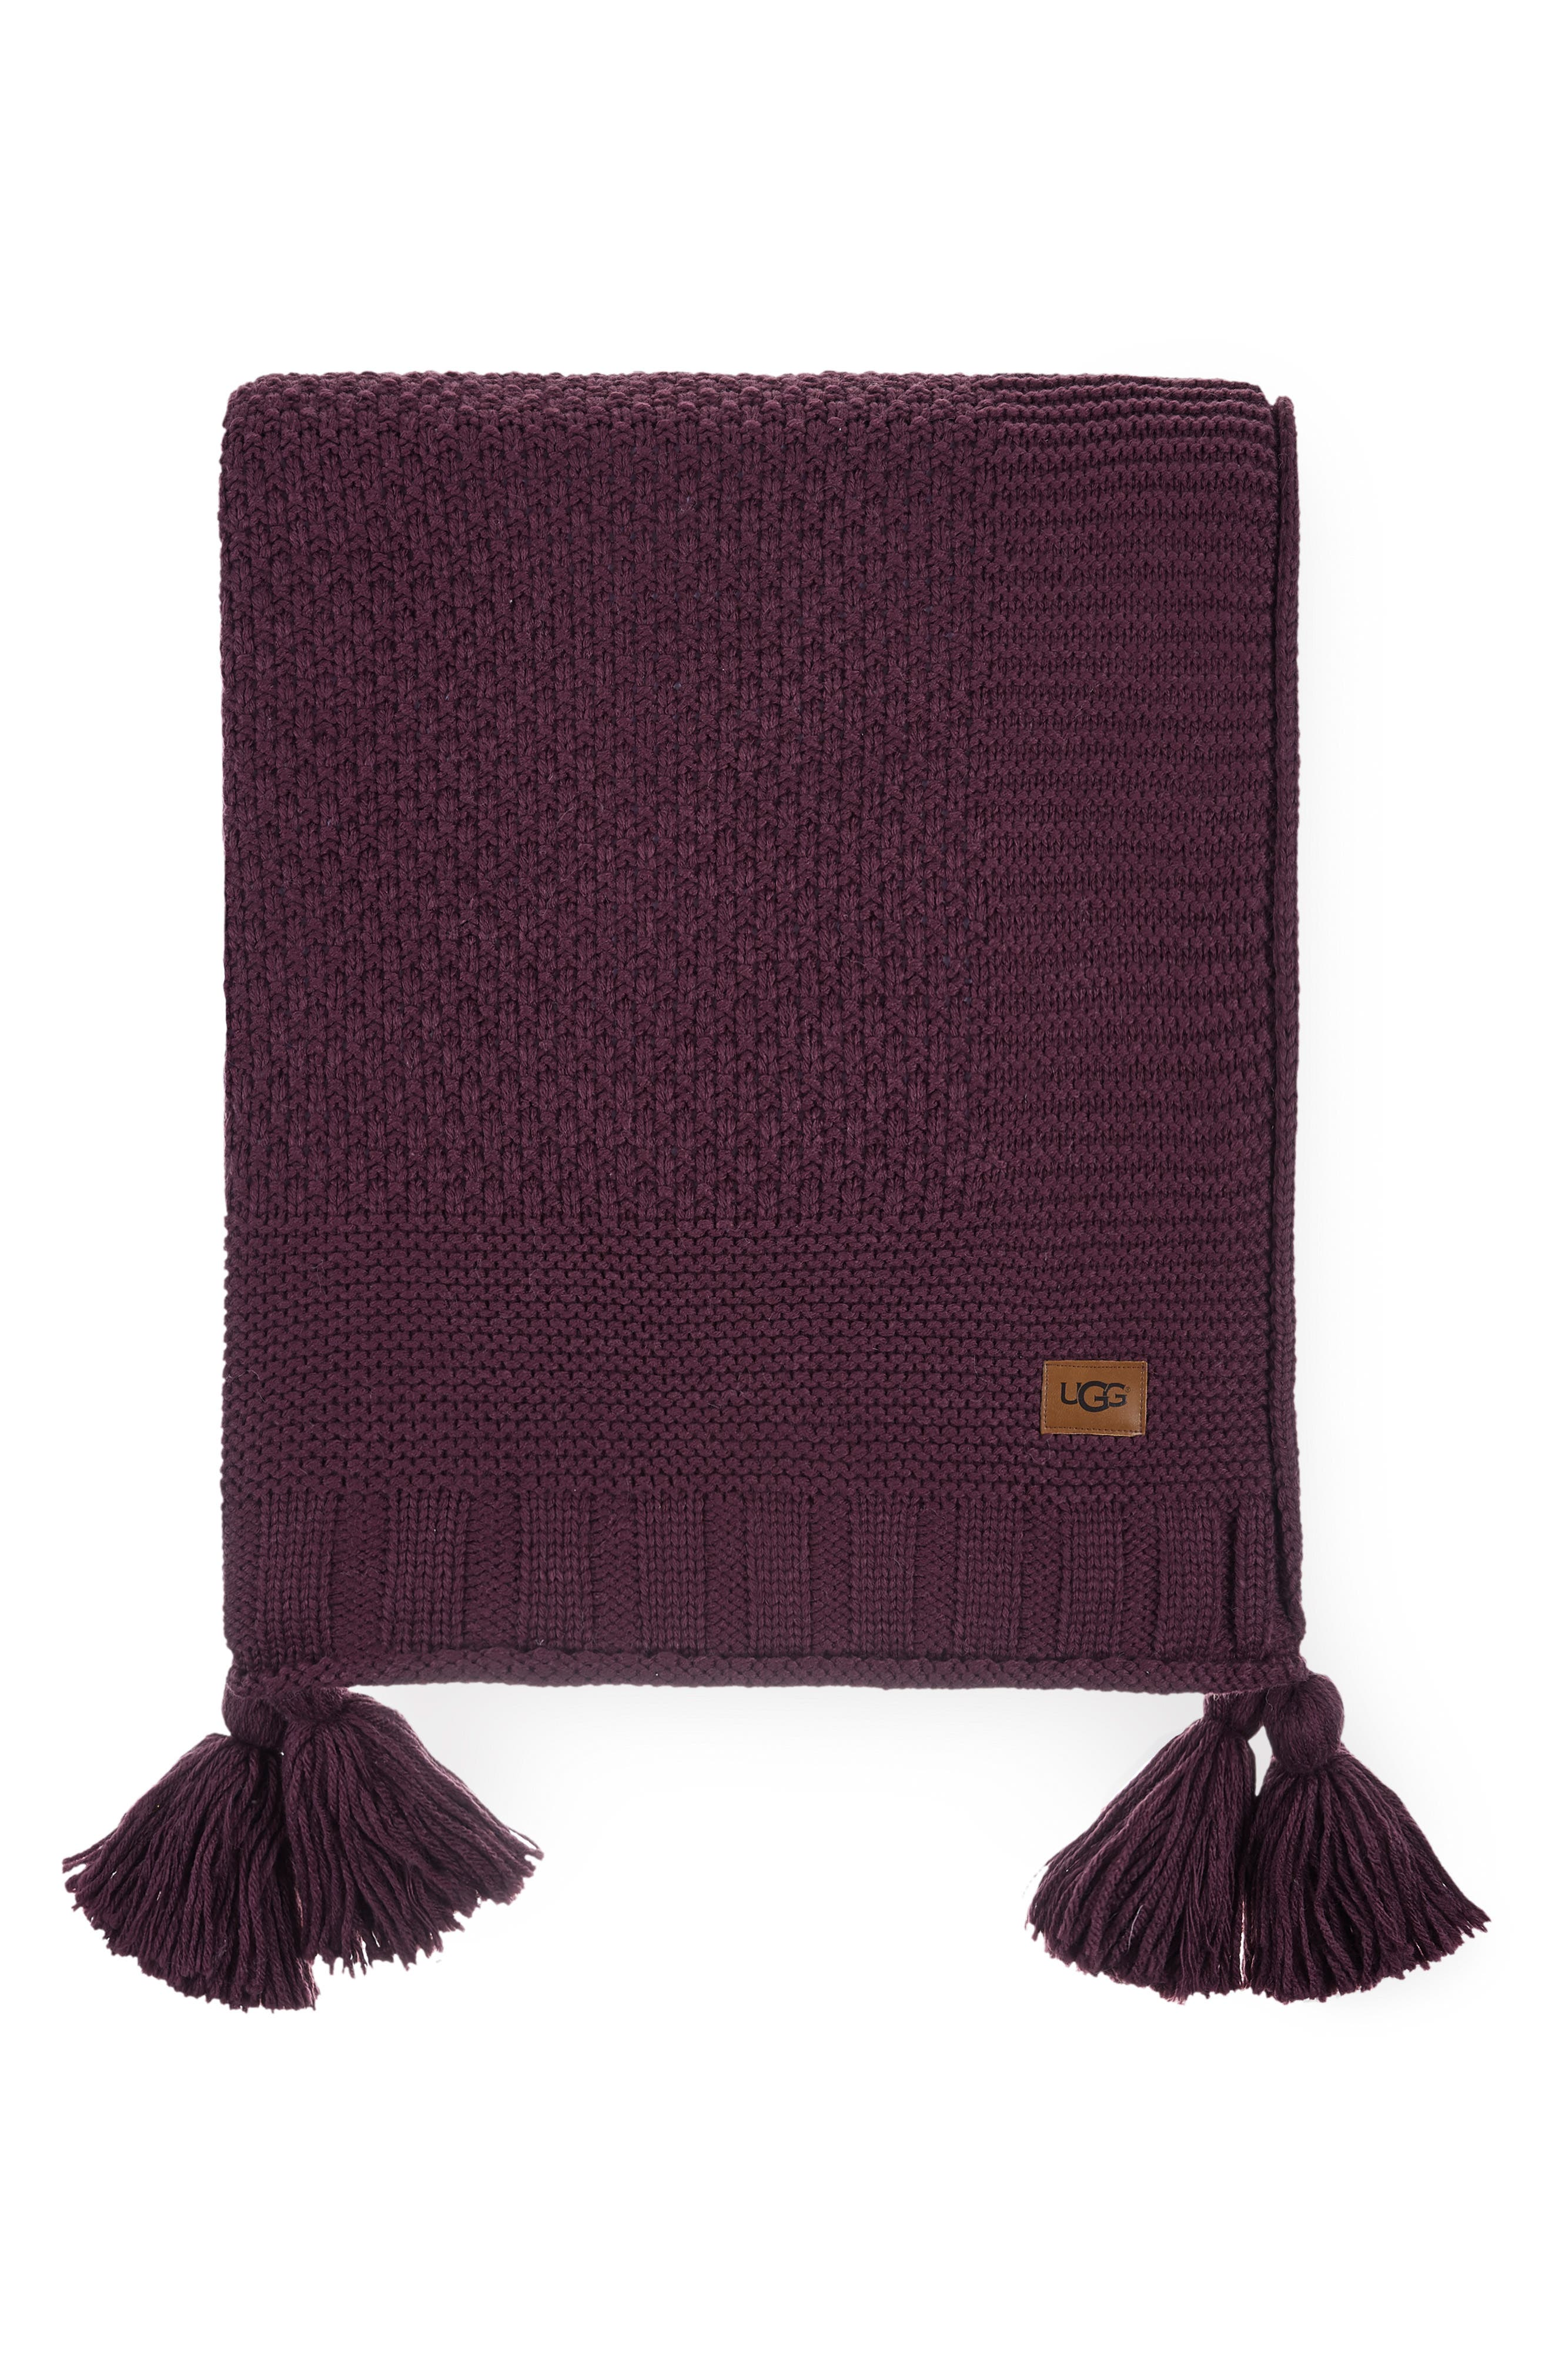 Mixed stitches lend subtle depth to a classic throw blanket knit from soft, thick yarns and trimmed in jaunty tassels. Style Name: UGG Preston Throw Blanket. Style Number: 5941643. Available in stores.